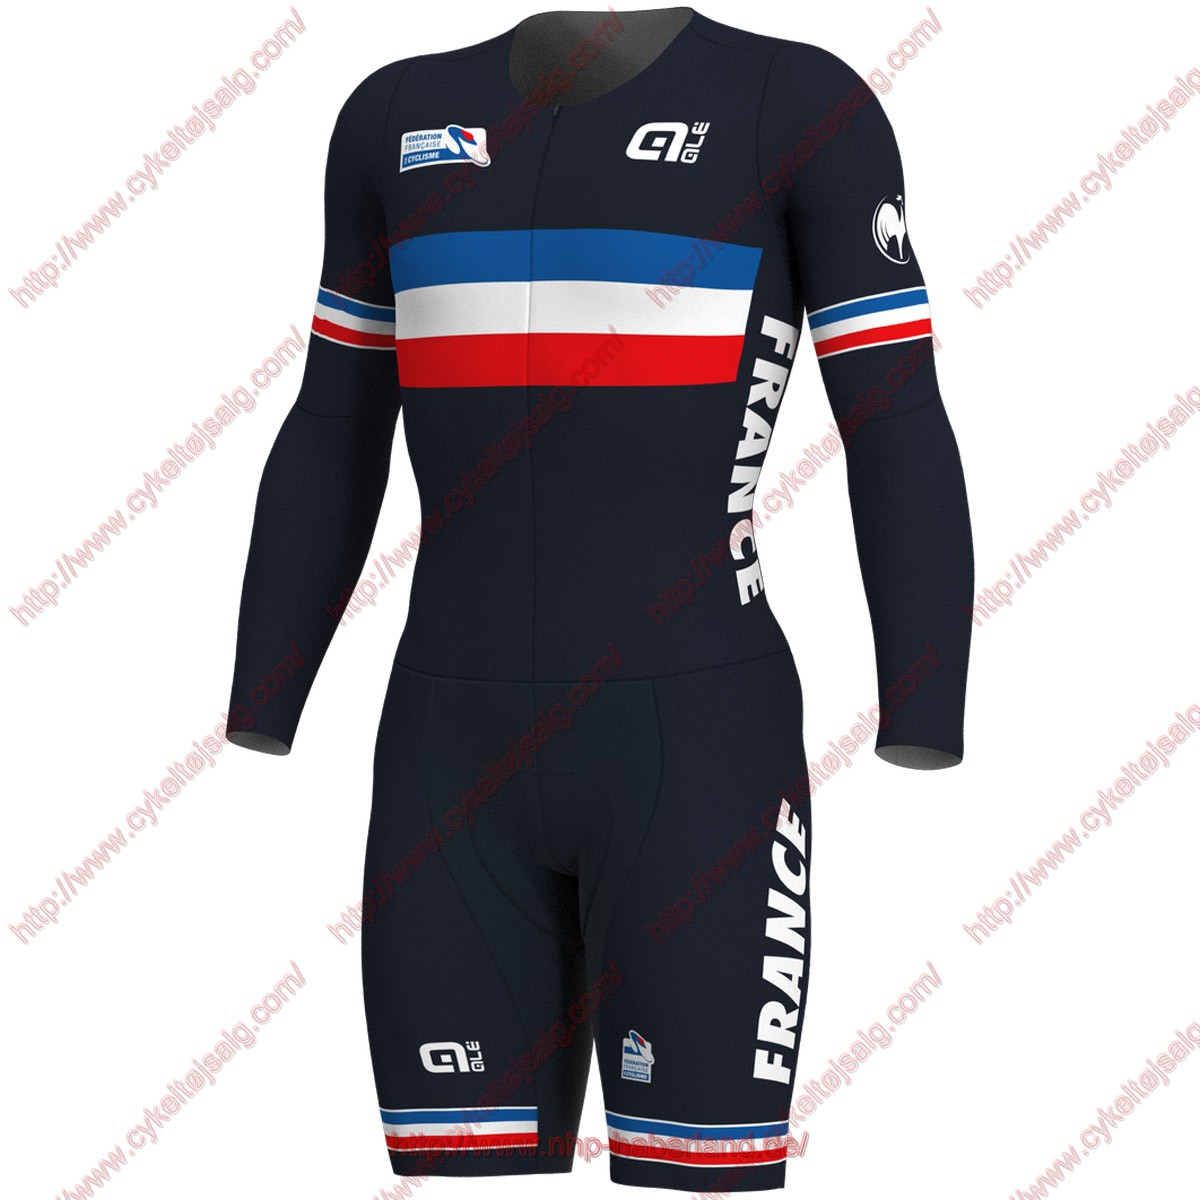 French National 2018 long sleeves Skinsuits